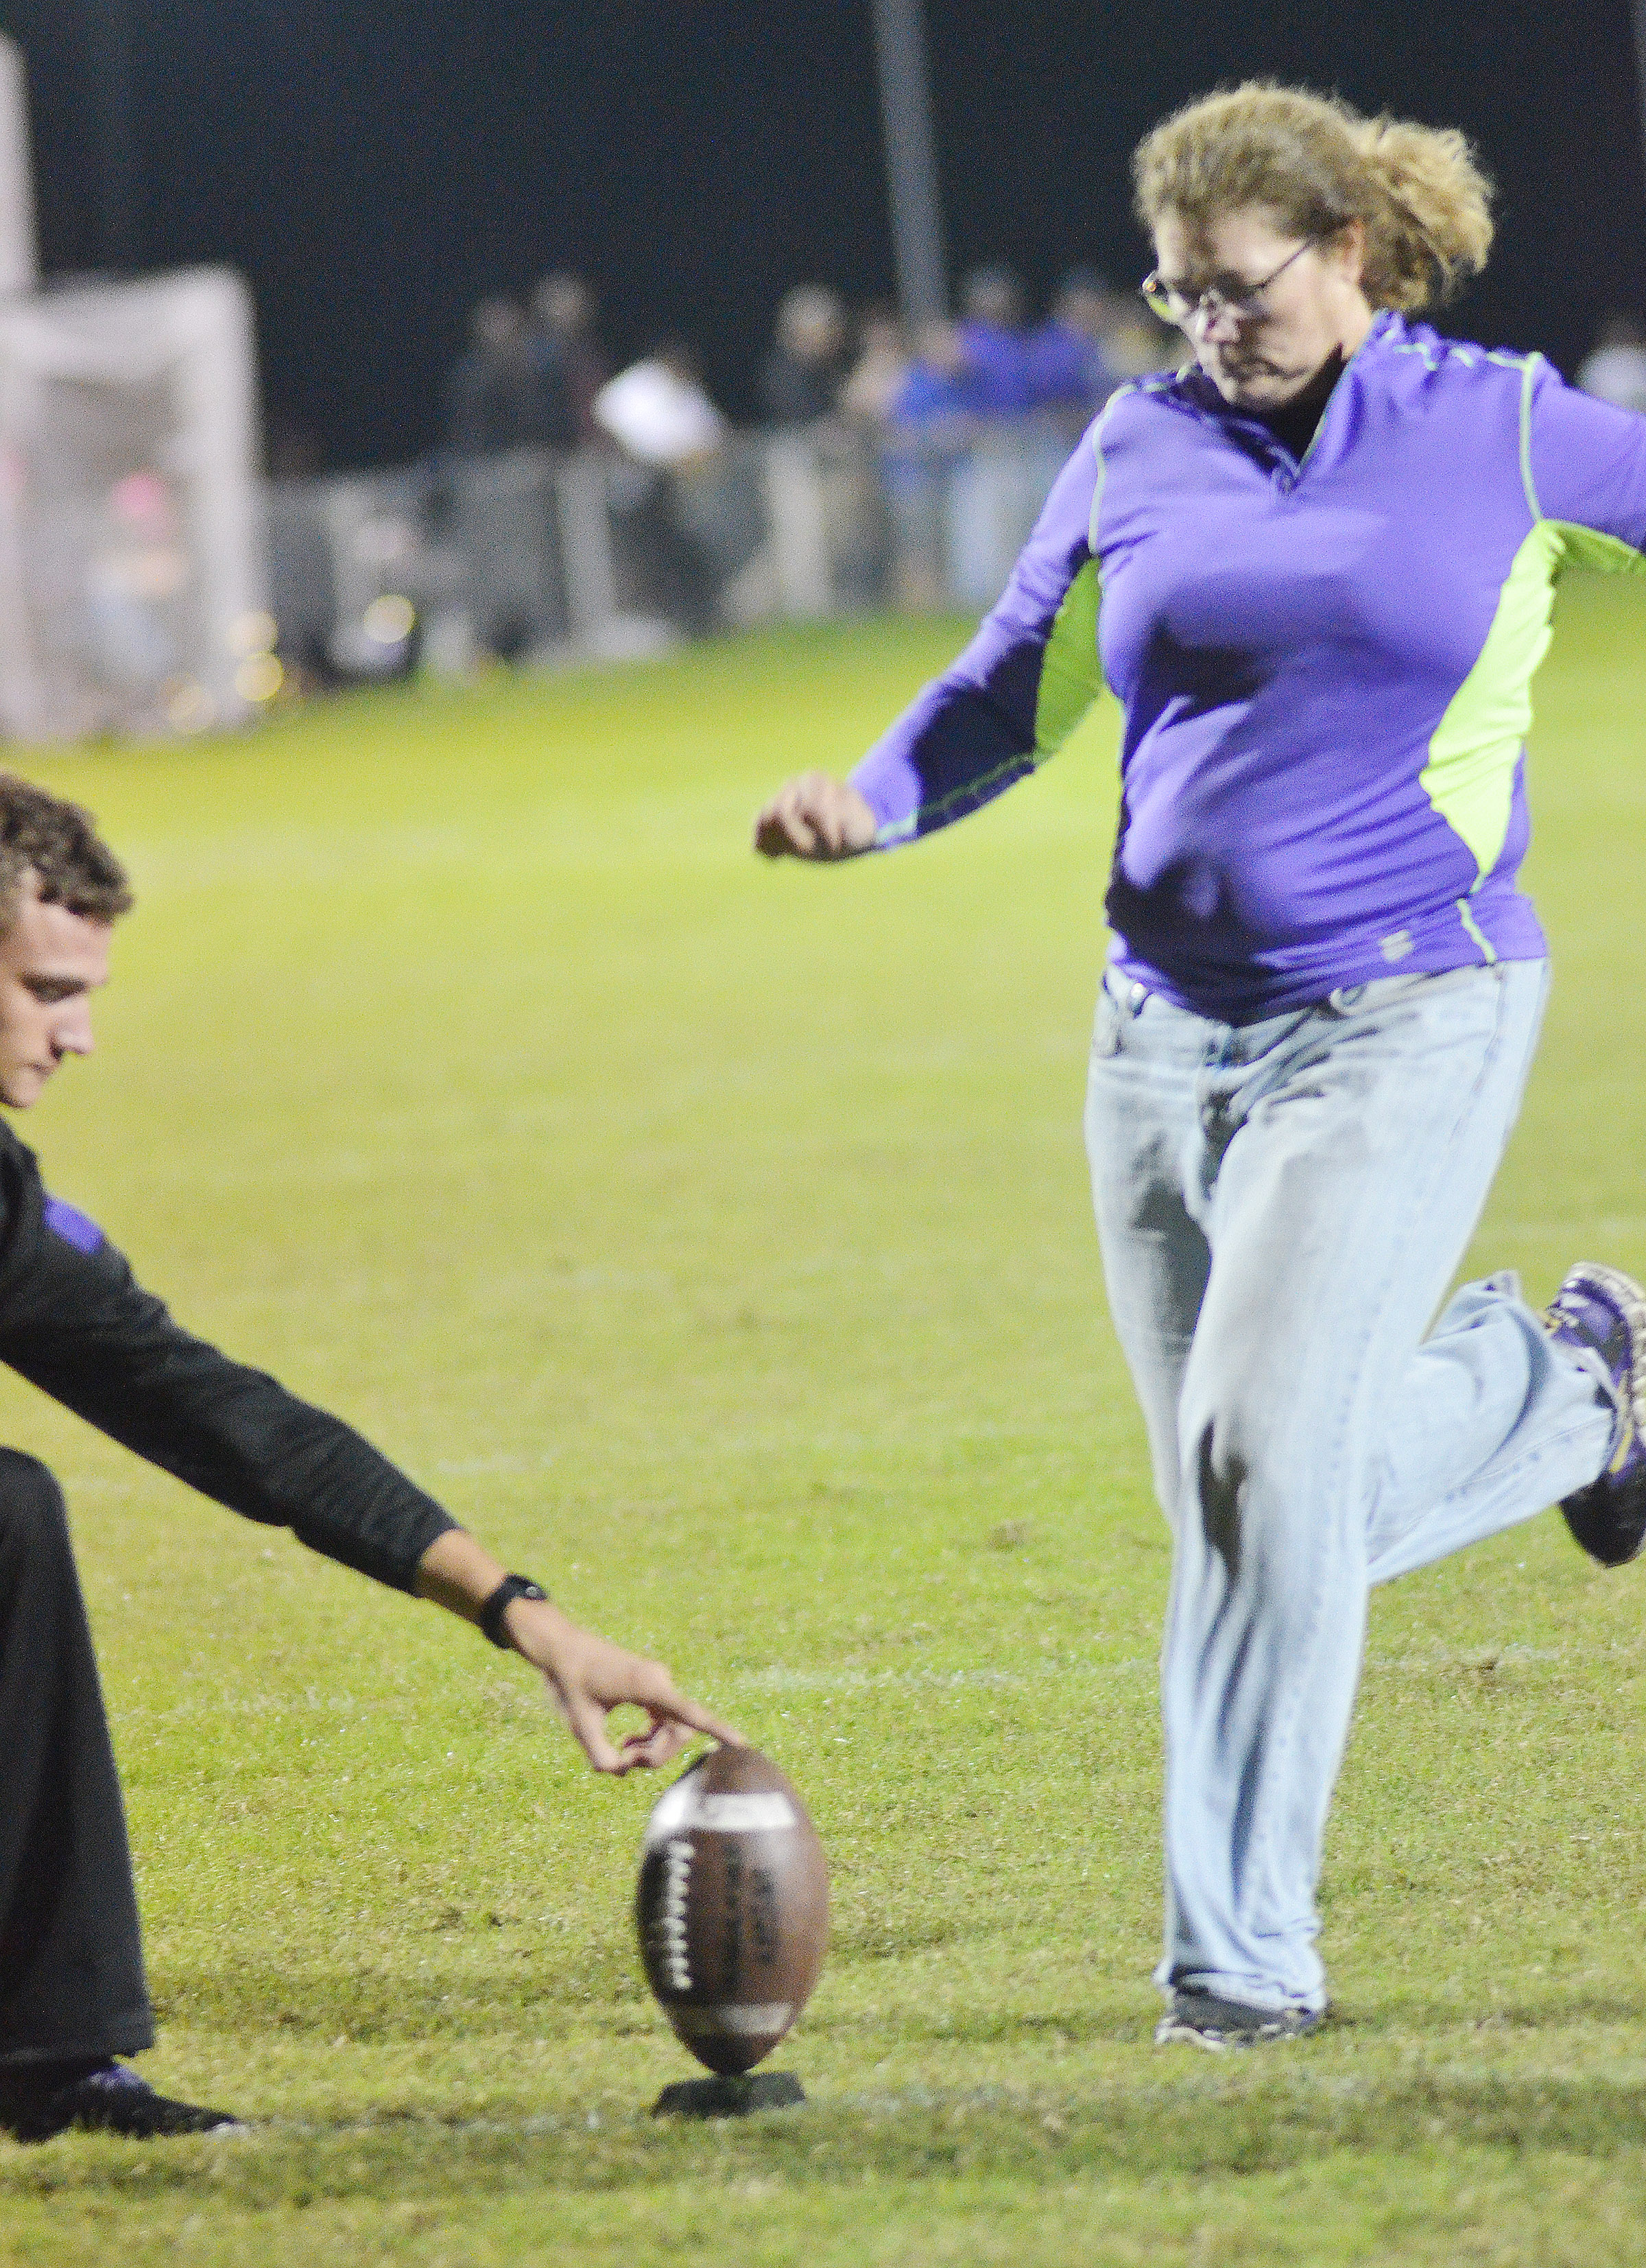 CHS teacher Tammy Wilson kicks a field goal to win senior Austin Fitzgerald a $50 prize in the Kick for Kids, sponsored by Kentucky Farm Bureau.